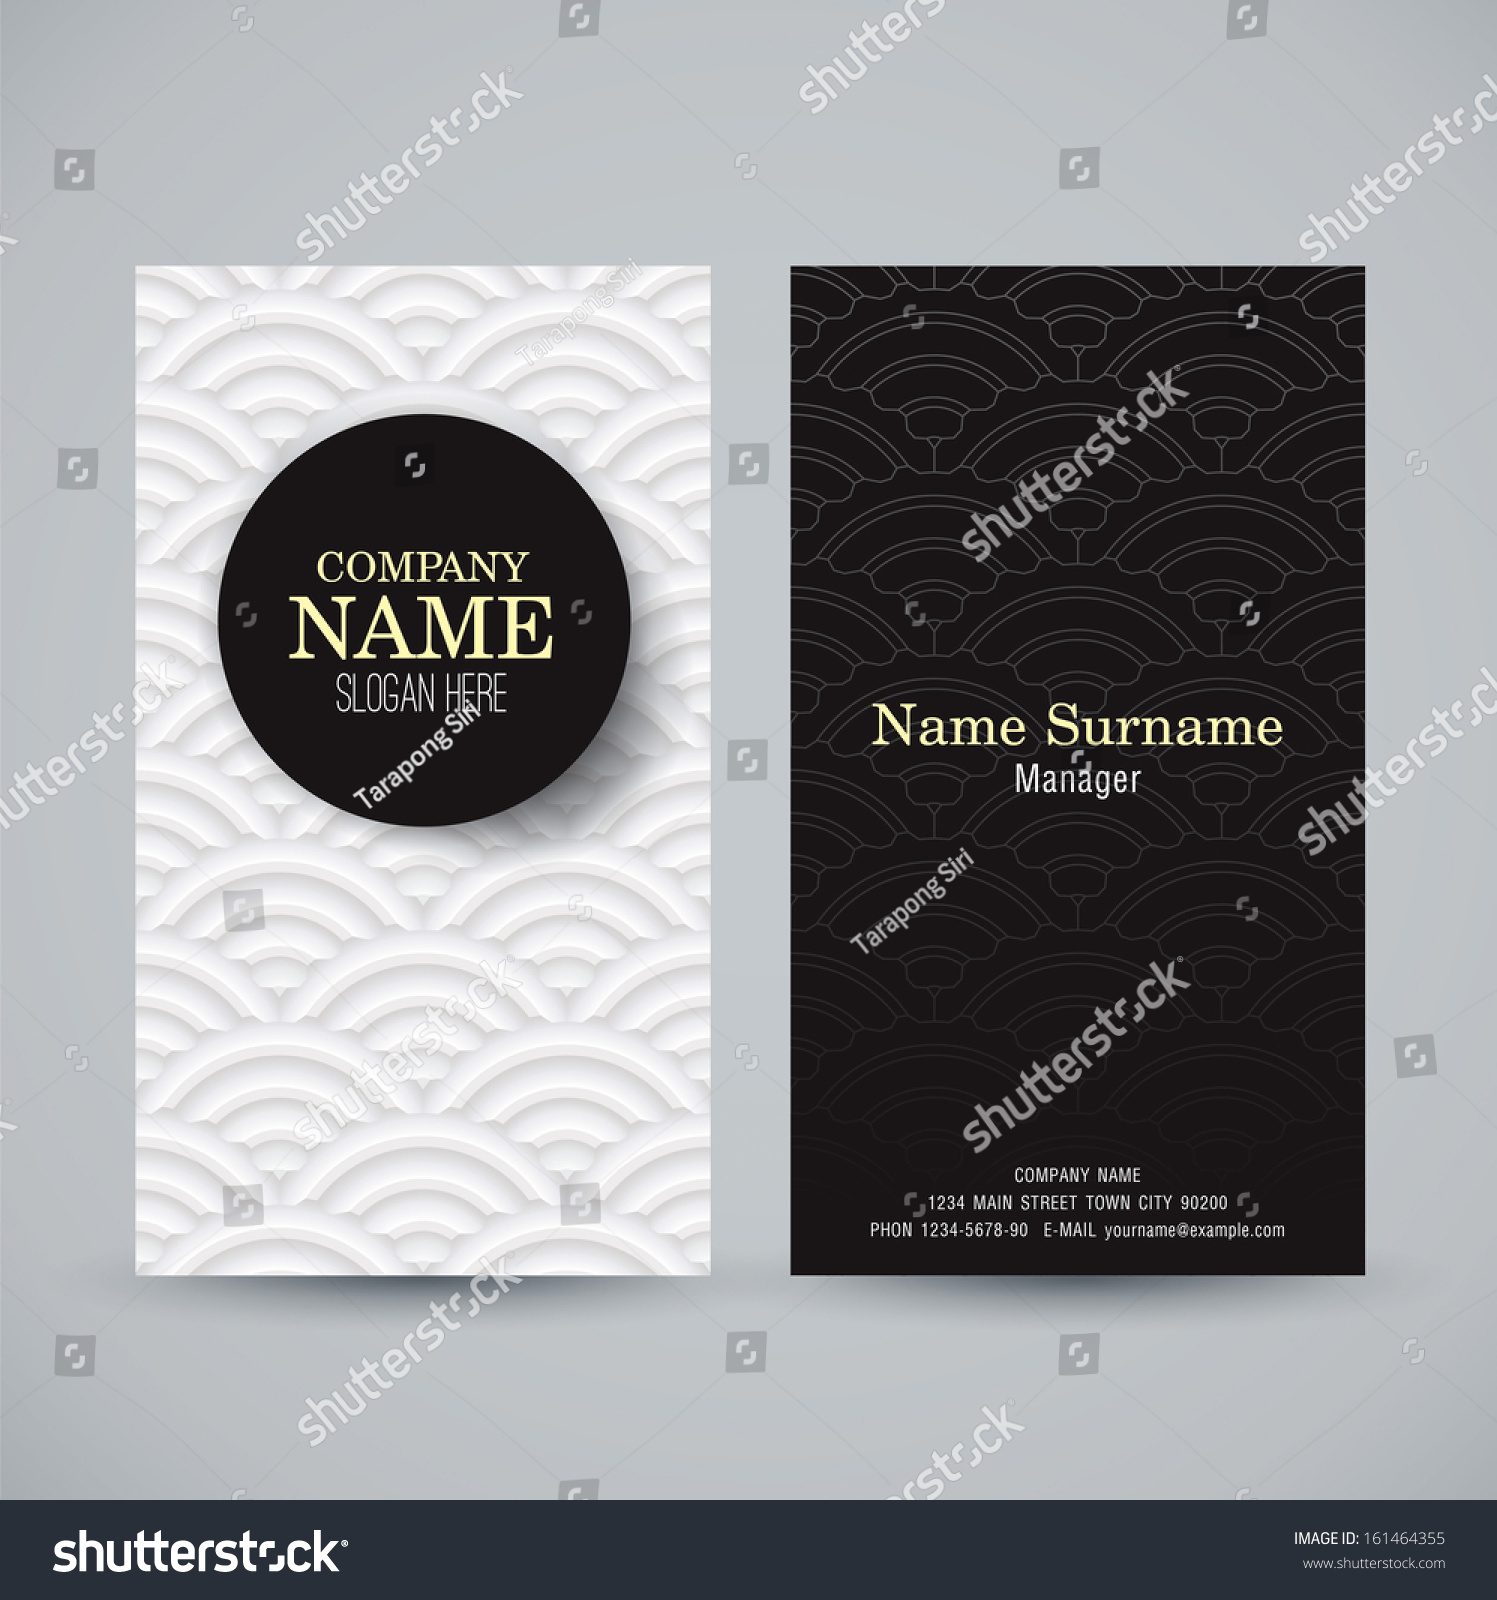 Name Card Design Template Business Card Stock Vector 161464355 ...